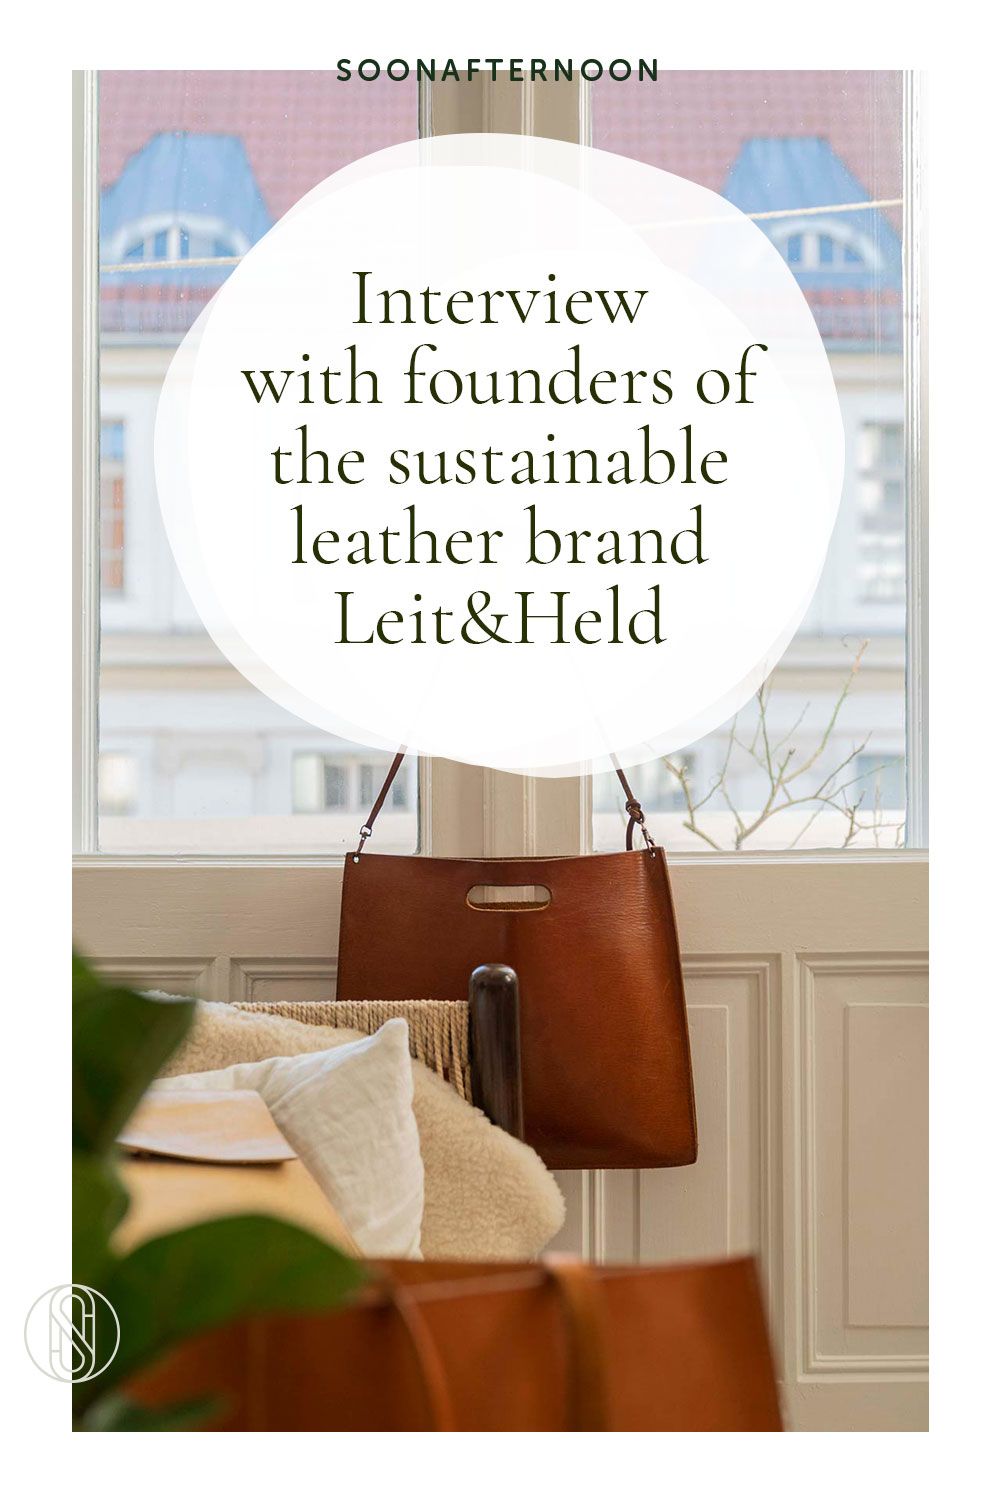 interview with sutainable brand Leit&Held